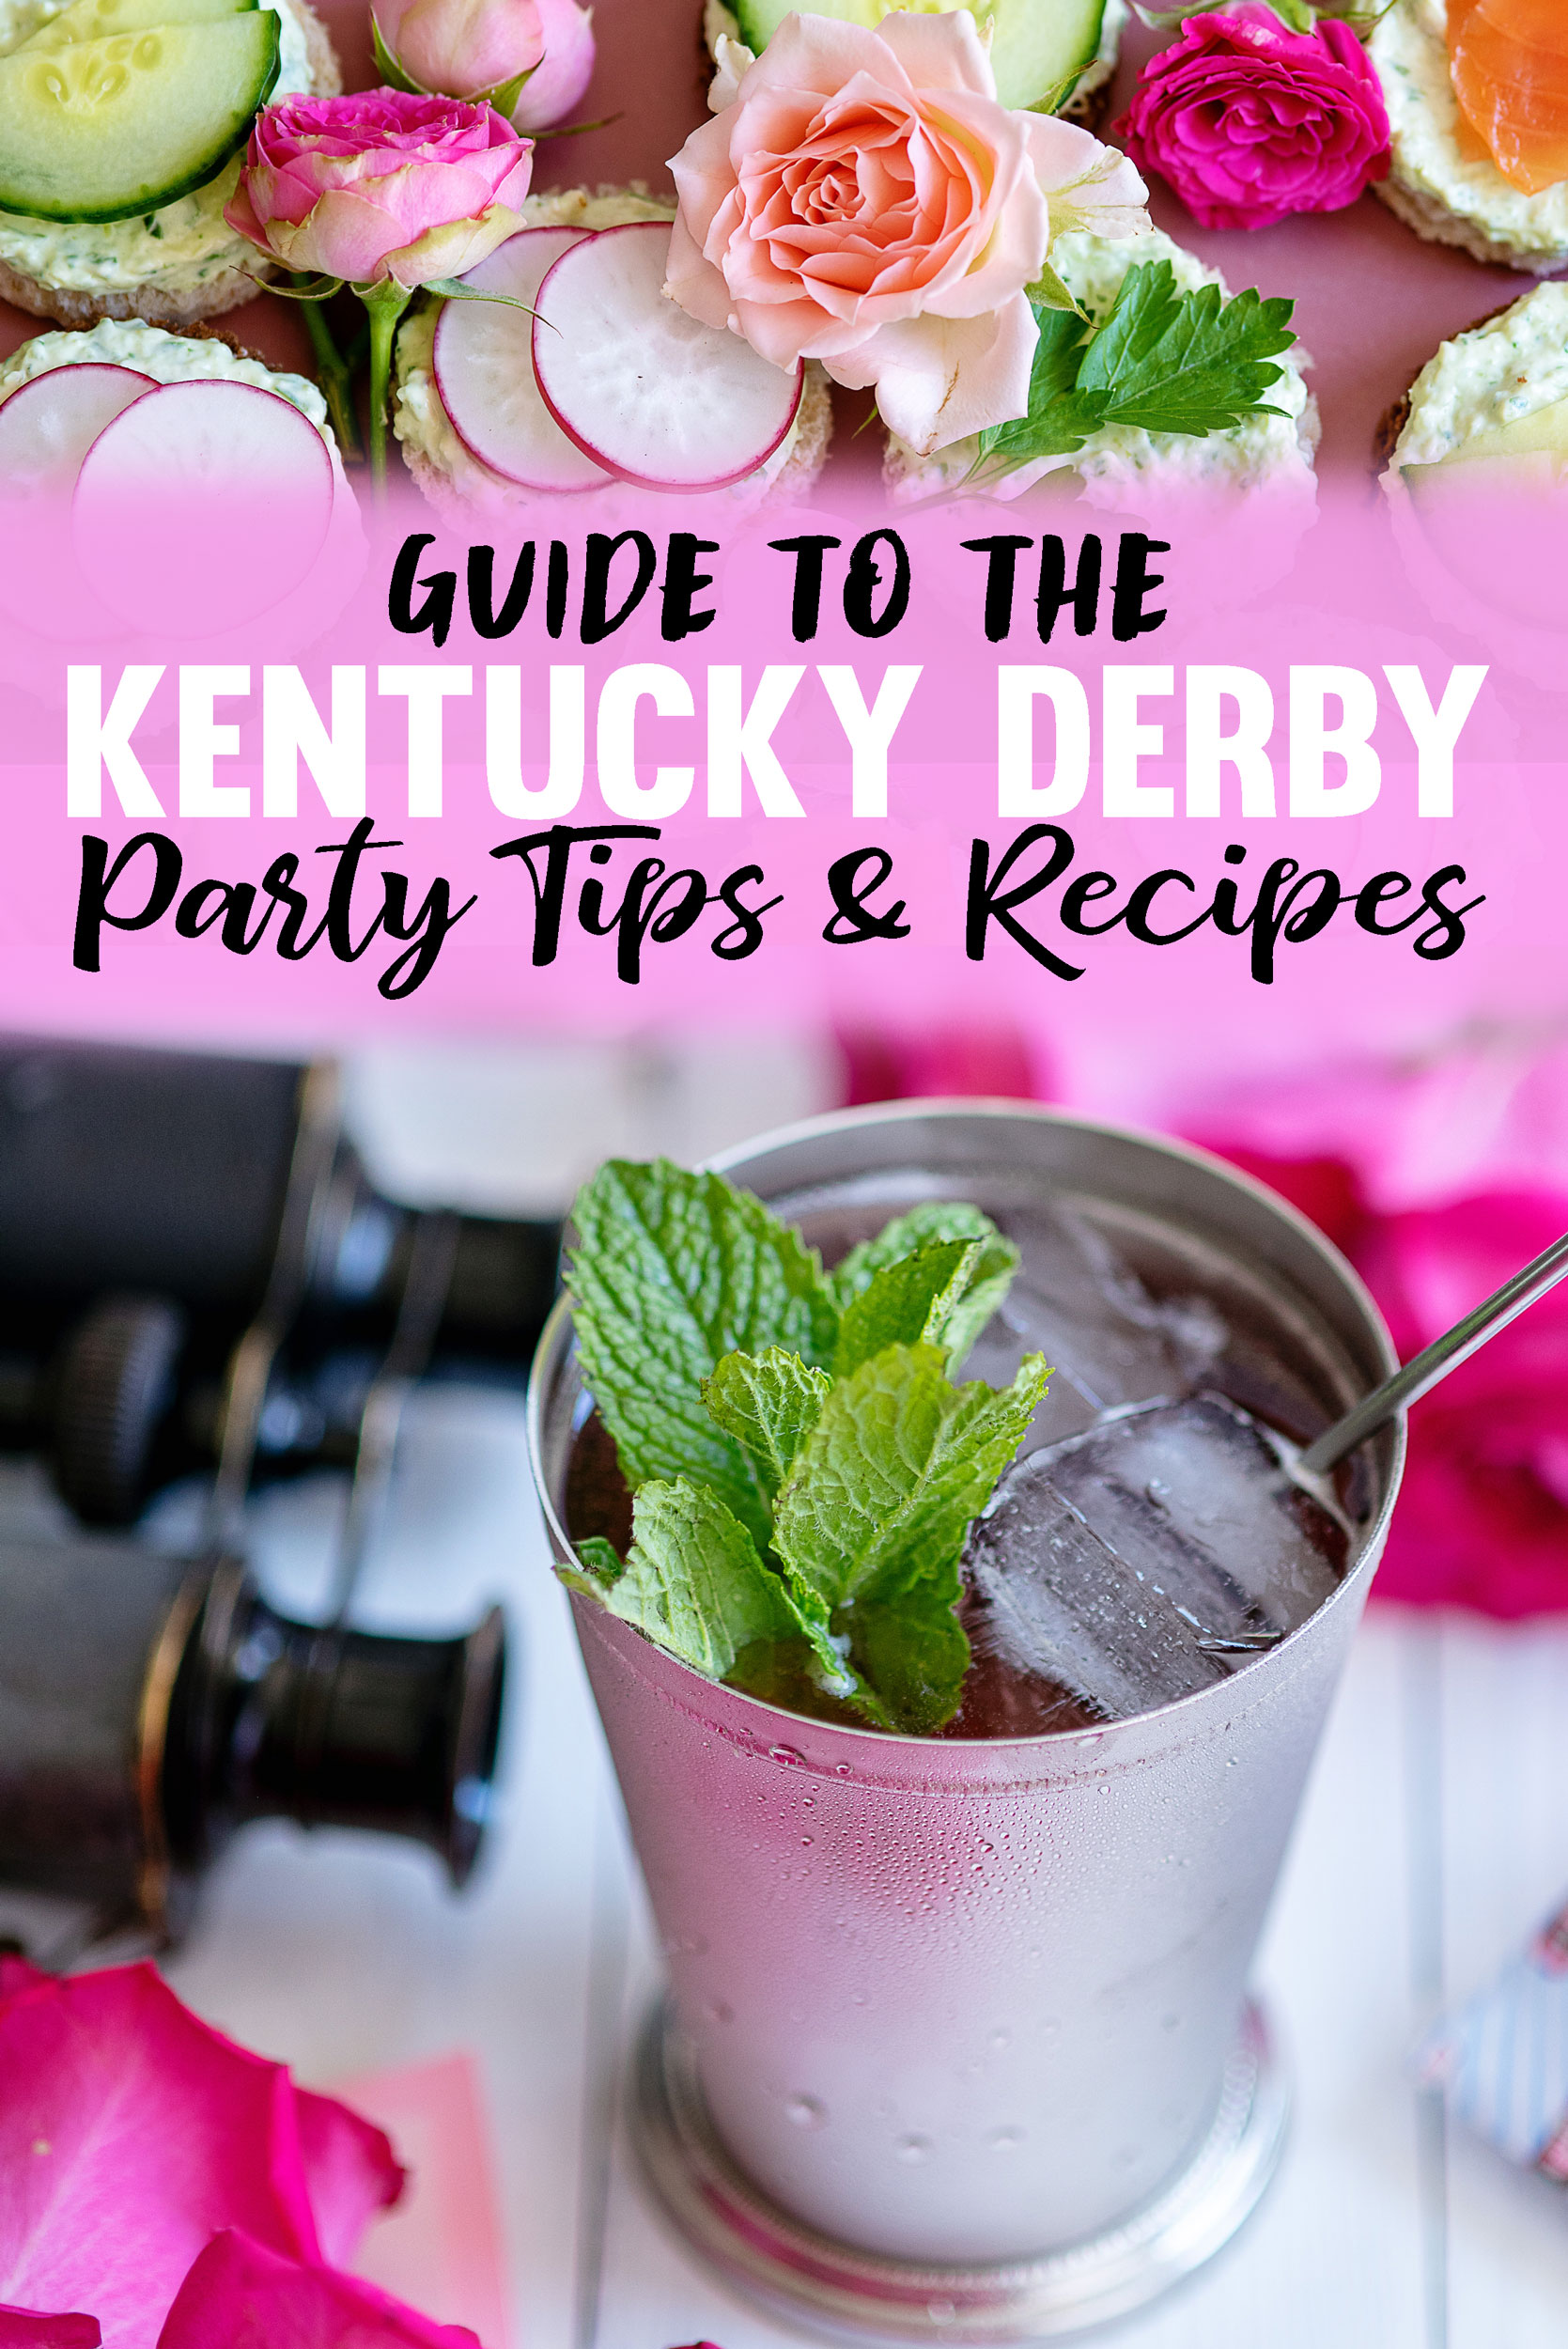 Kentucky Derby Party Ideas, Food Recipes Attire and Decorations